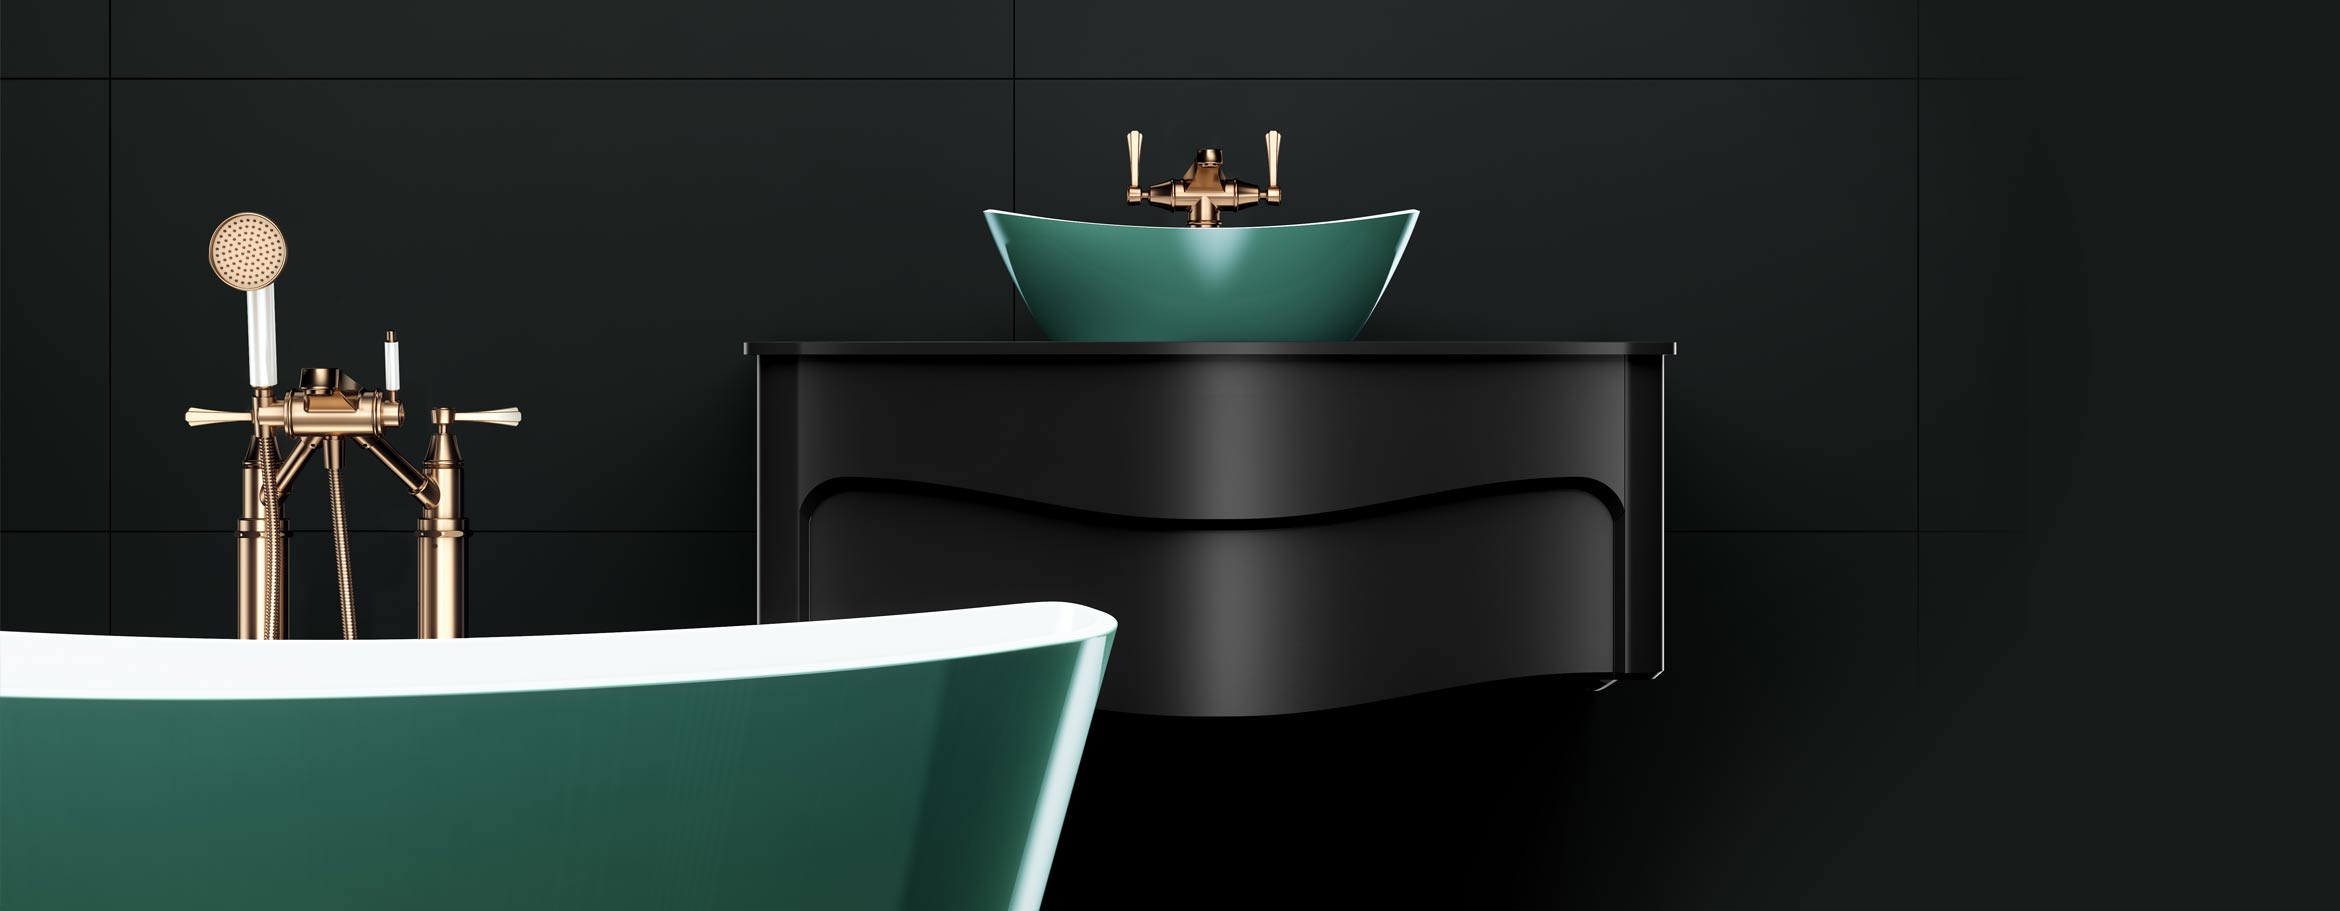 Victoria + Albert custom painted baths and basins - distributed in Australia by Luxe by Design Brisbane.